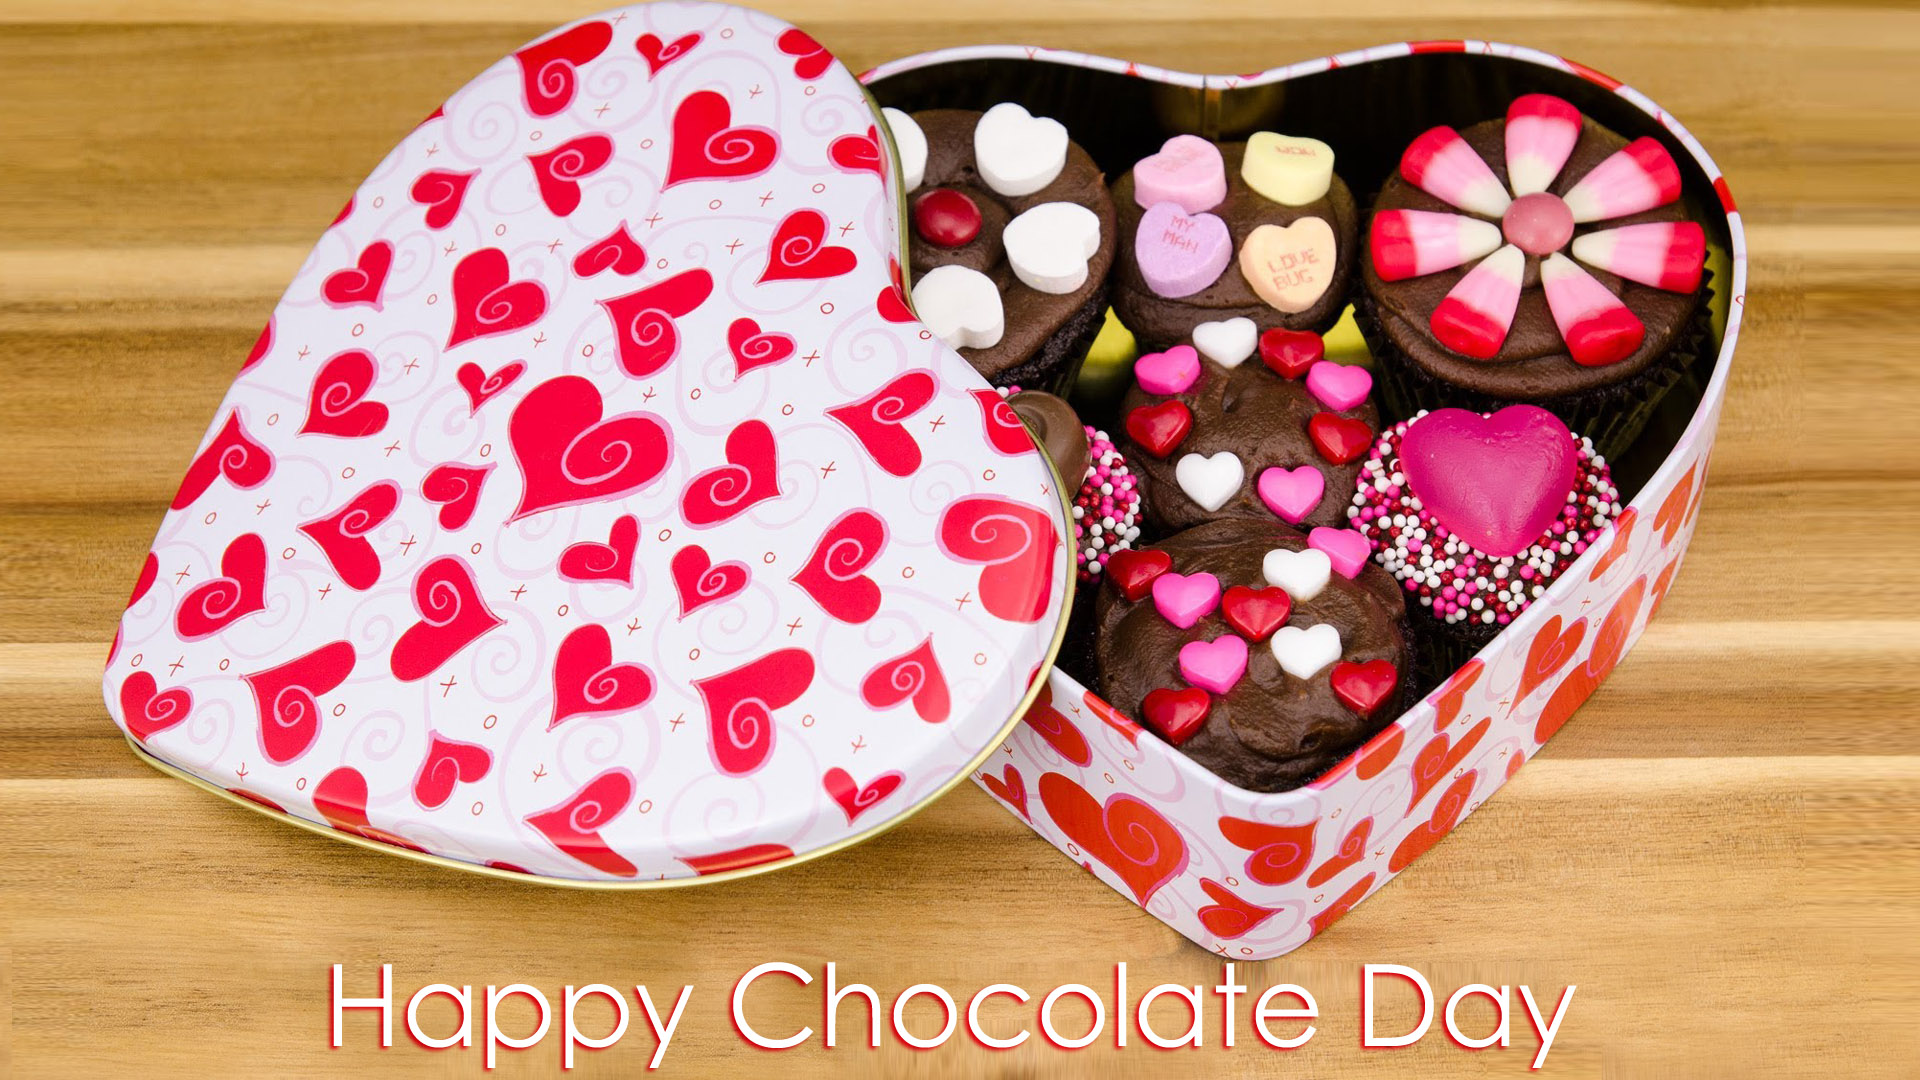 HD Chocolate Day Wallpaper